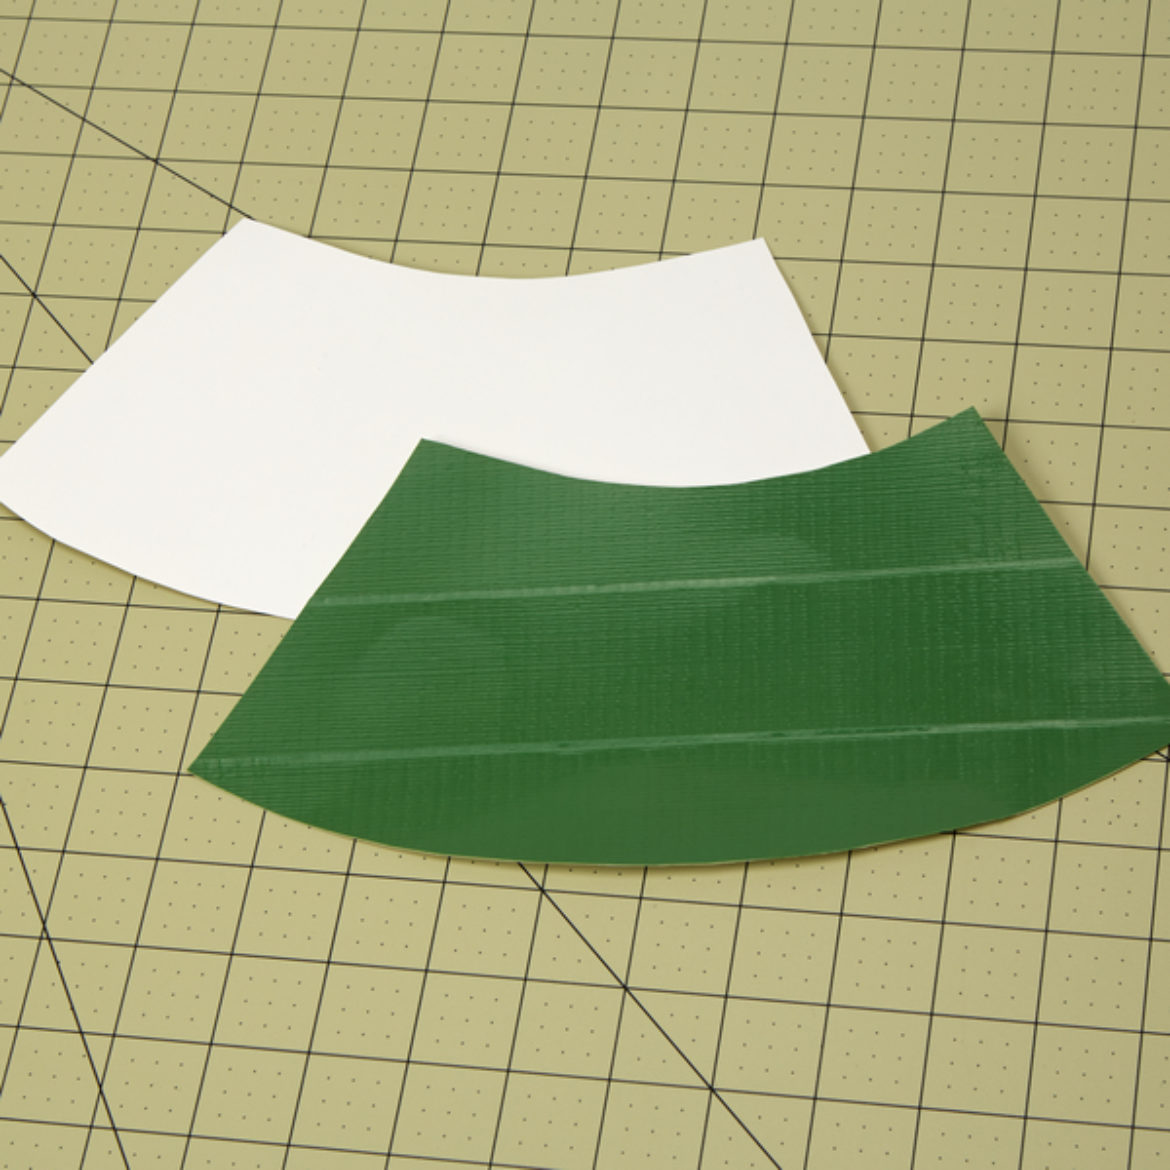 Arch shape cut out of a piece of poster board, then covered in green Duck Tape